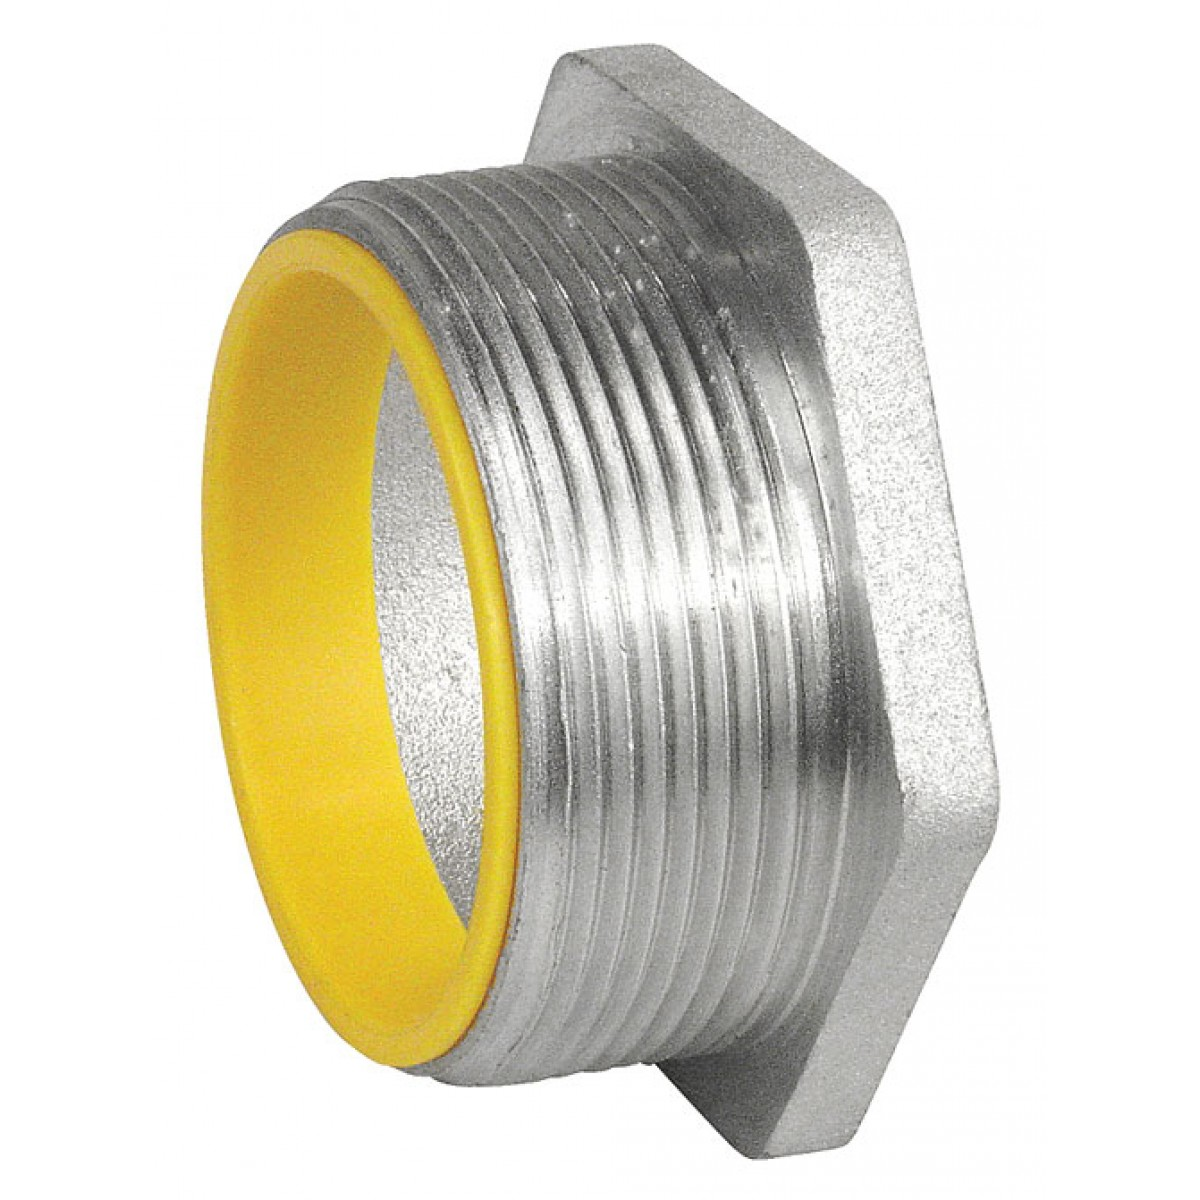 """5 Pcs, 1/2 In. Rigid Chase Nipple, Insulated, Die Cast Zinc to Connect 1/2"""" Conduits to Electrical Boxes & Enclosures"""